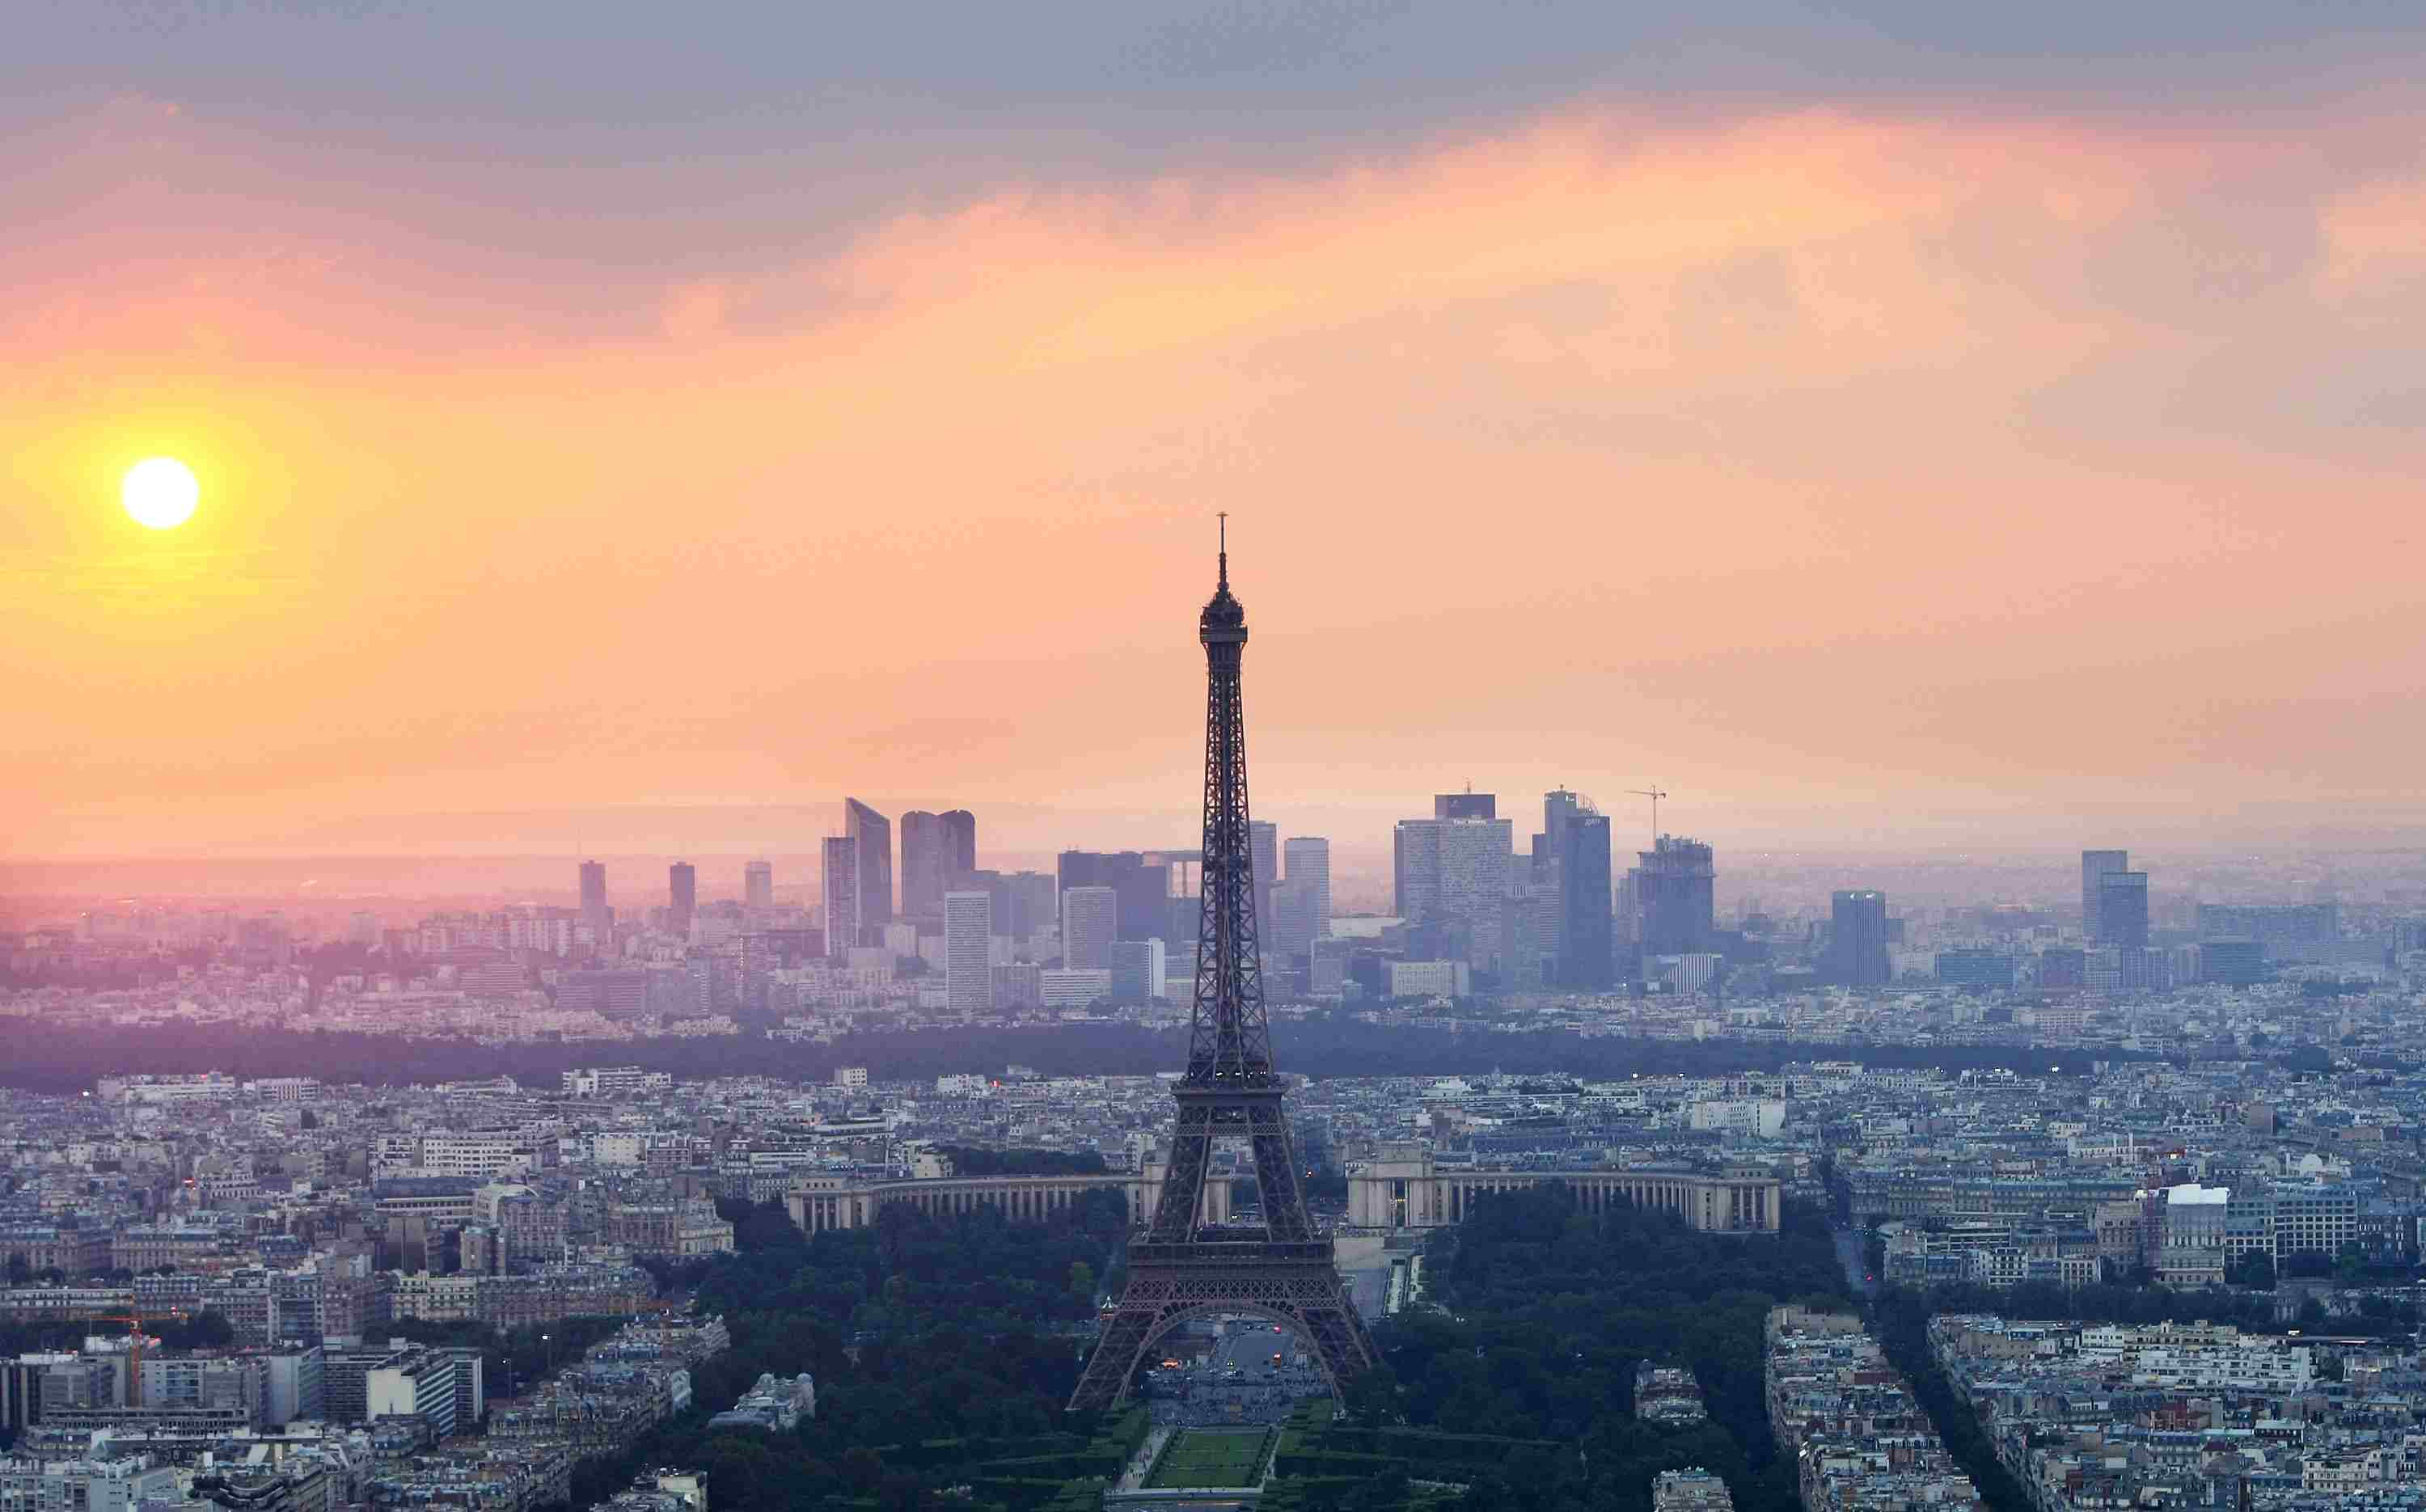 The Eiffel Tower photographed at sunset